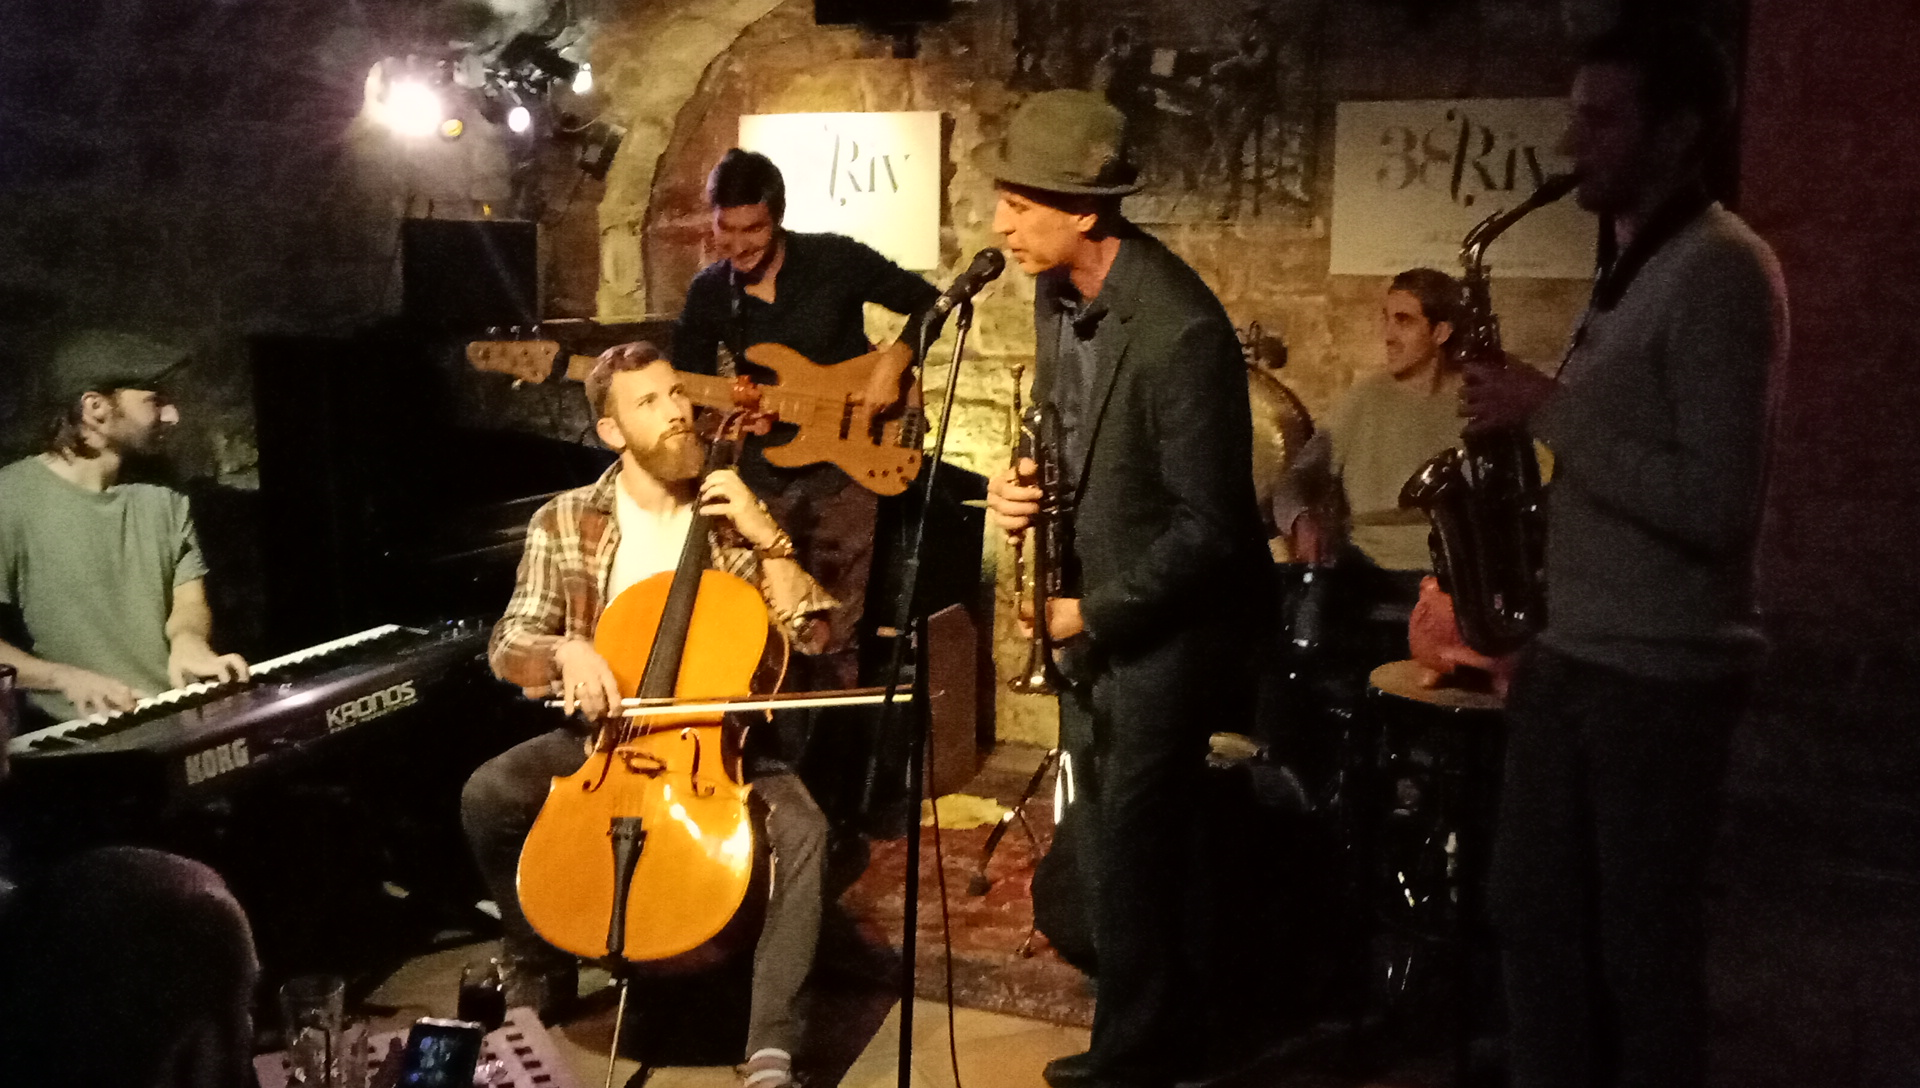 Playing Money Killed Songs with some local Paris jazz musos